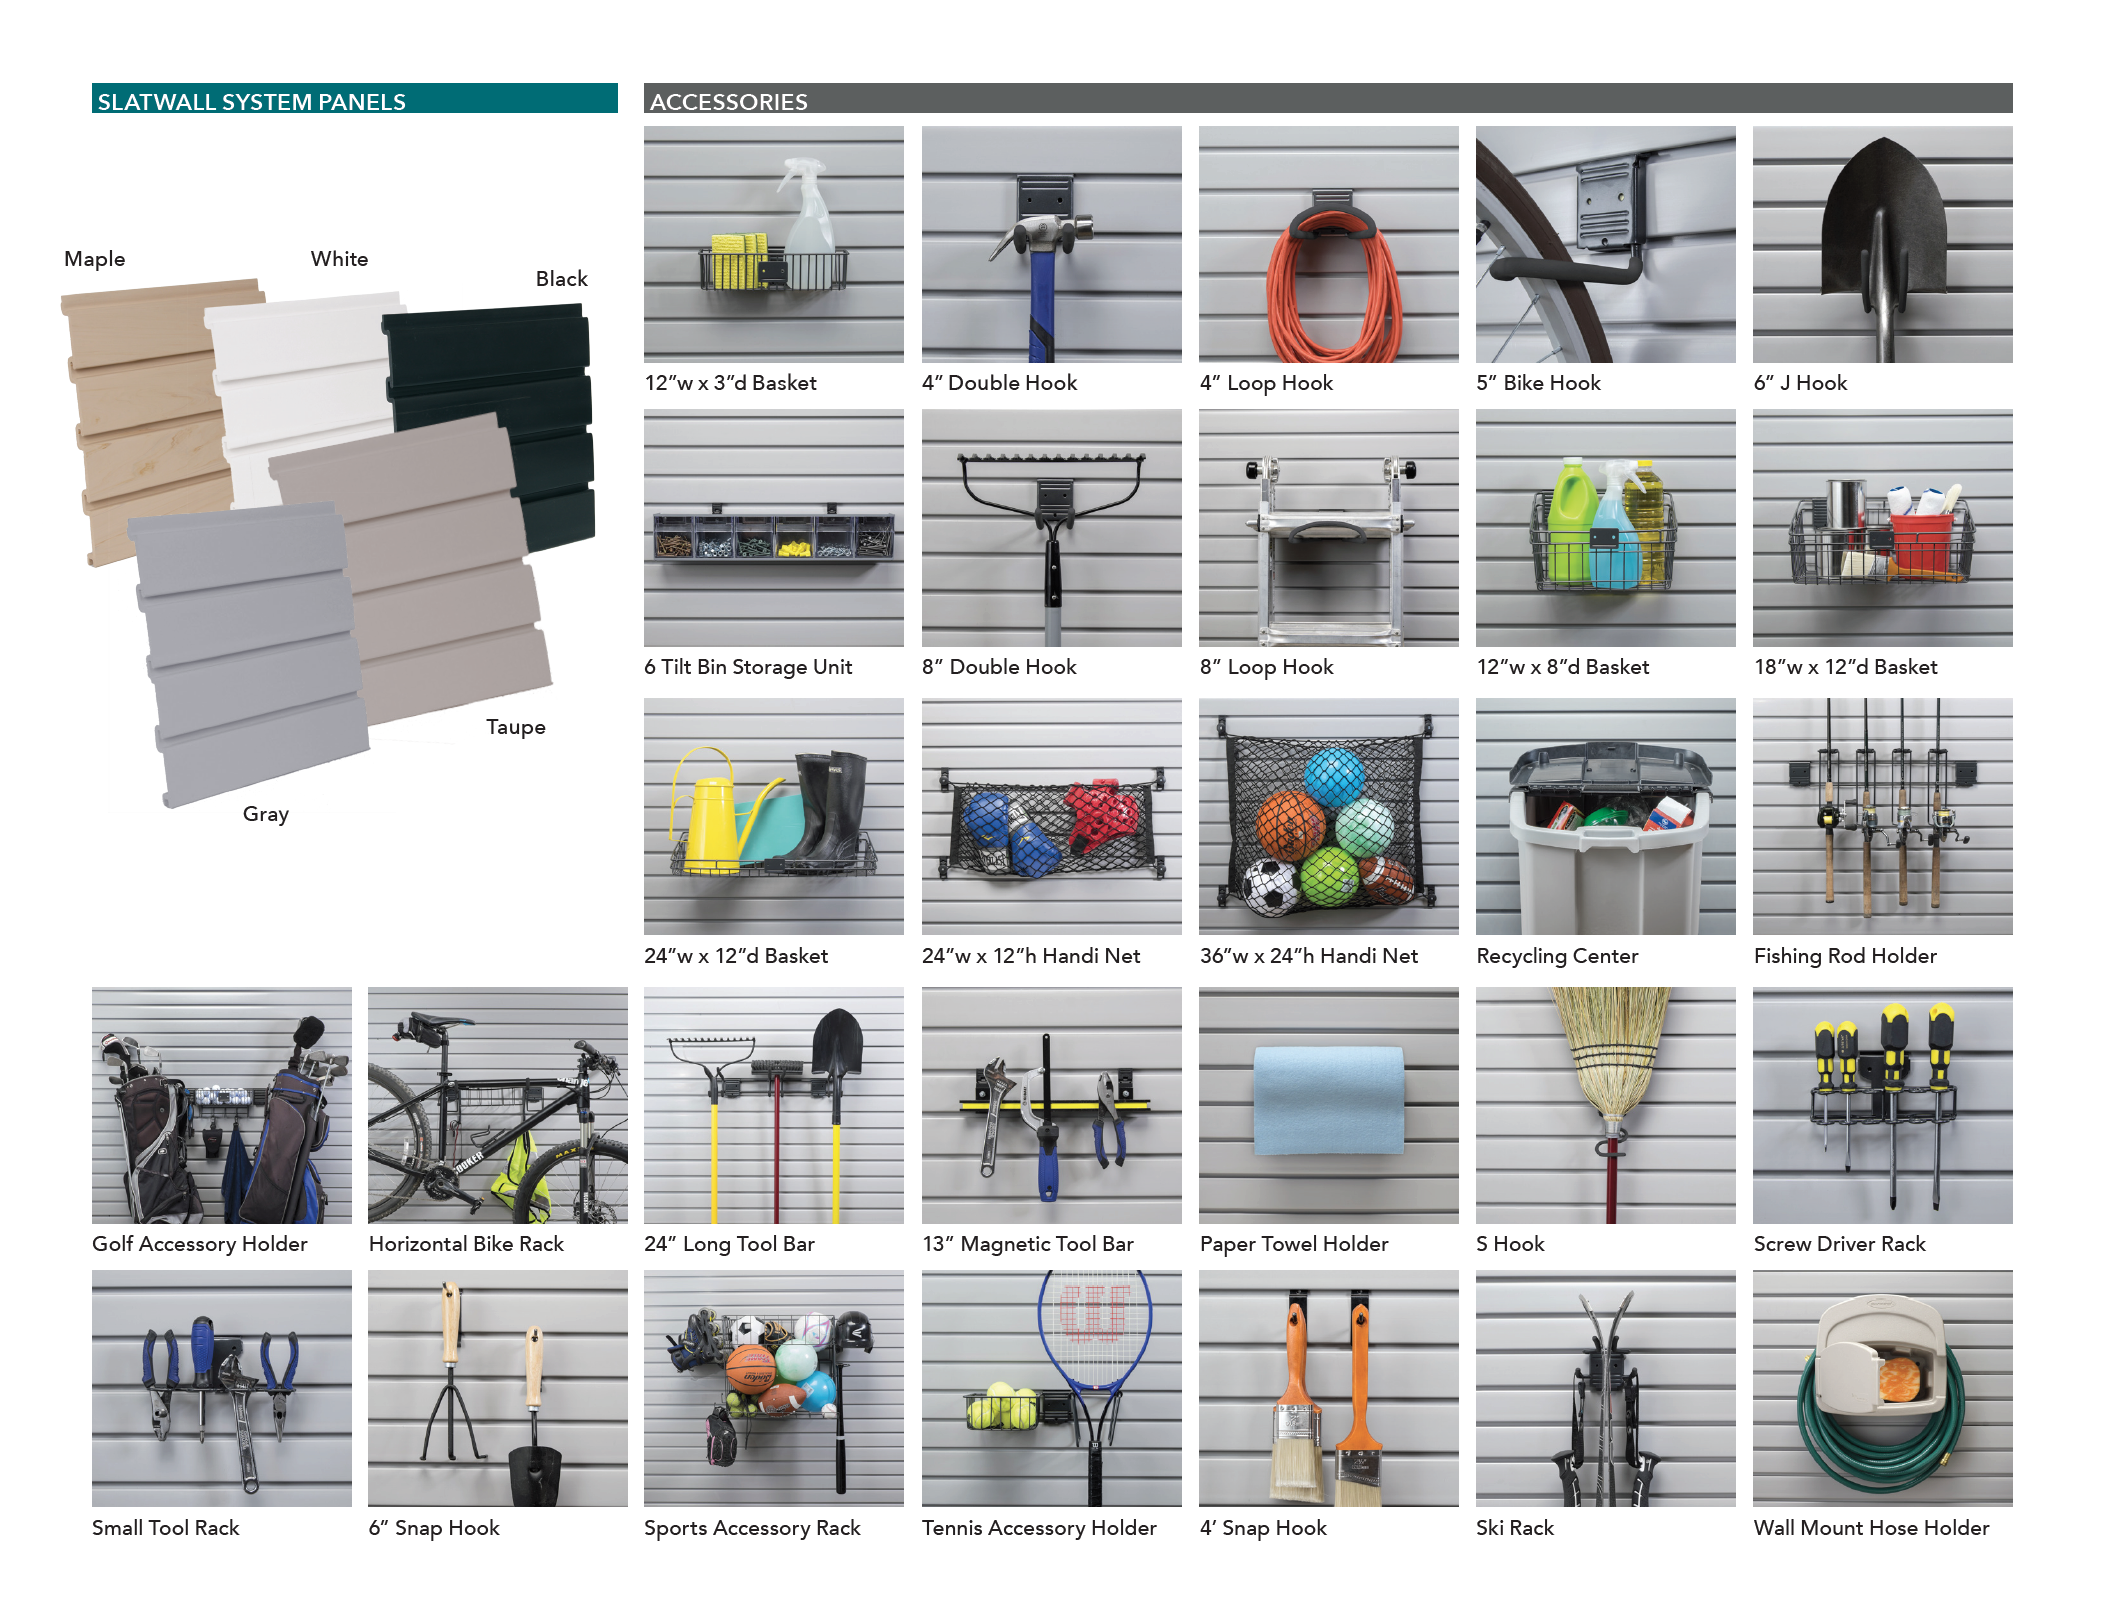 Sports Accessory Rack - Basket - Small Tool Rack - S Hook - Handi Net - Magnetic Tool Bar - Recycling Center - Double Hook - Screwdriver Rack - Snap Hook - Long Tool Bar